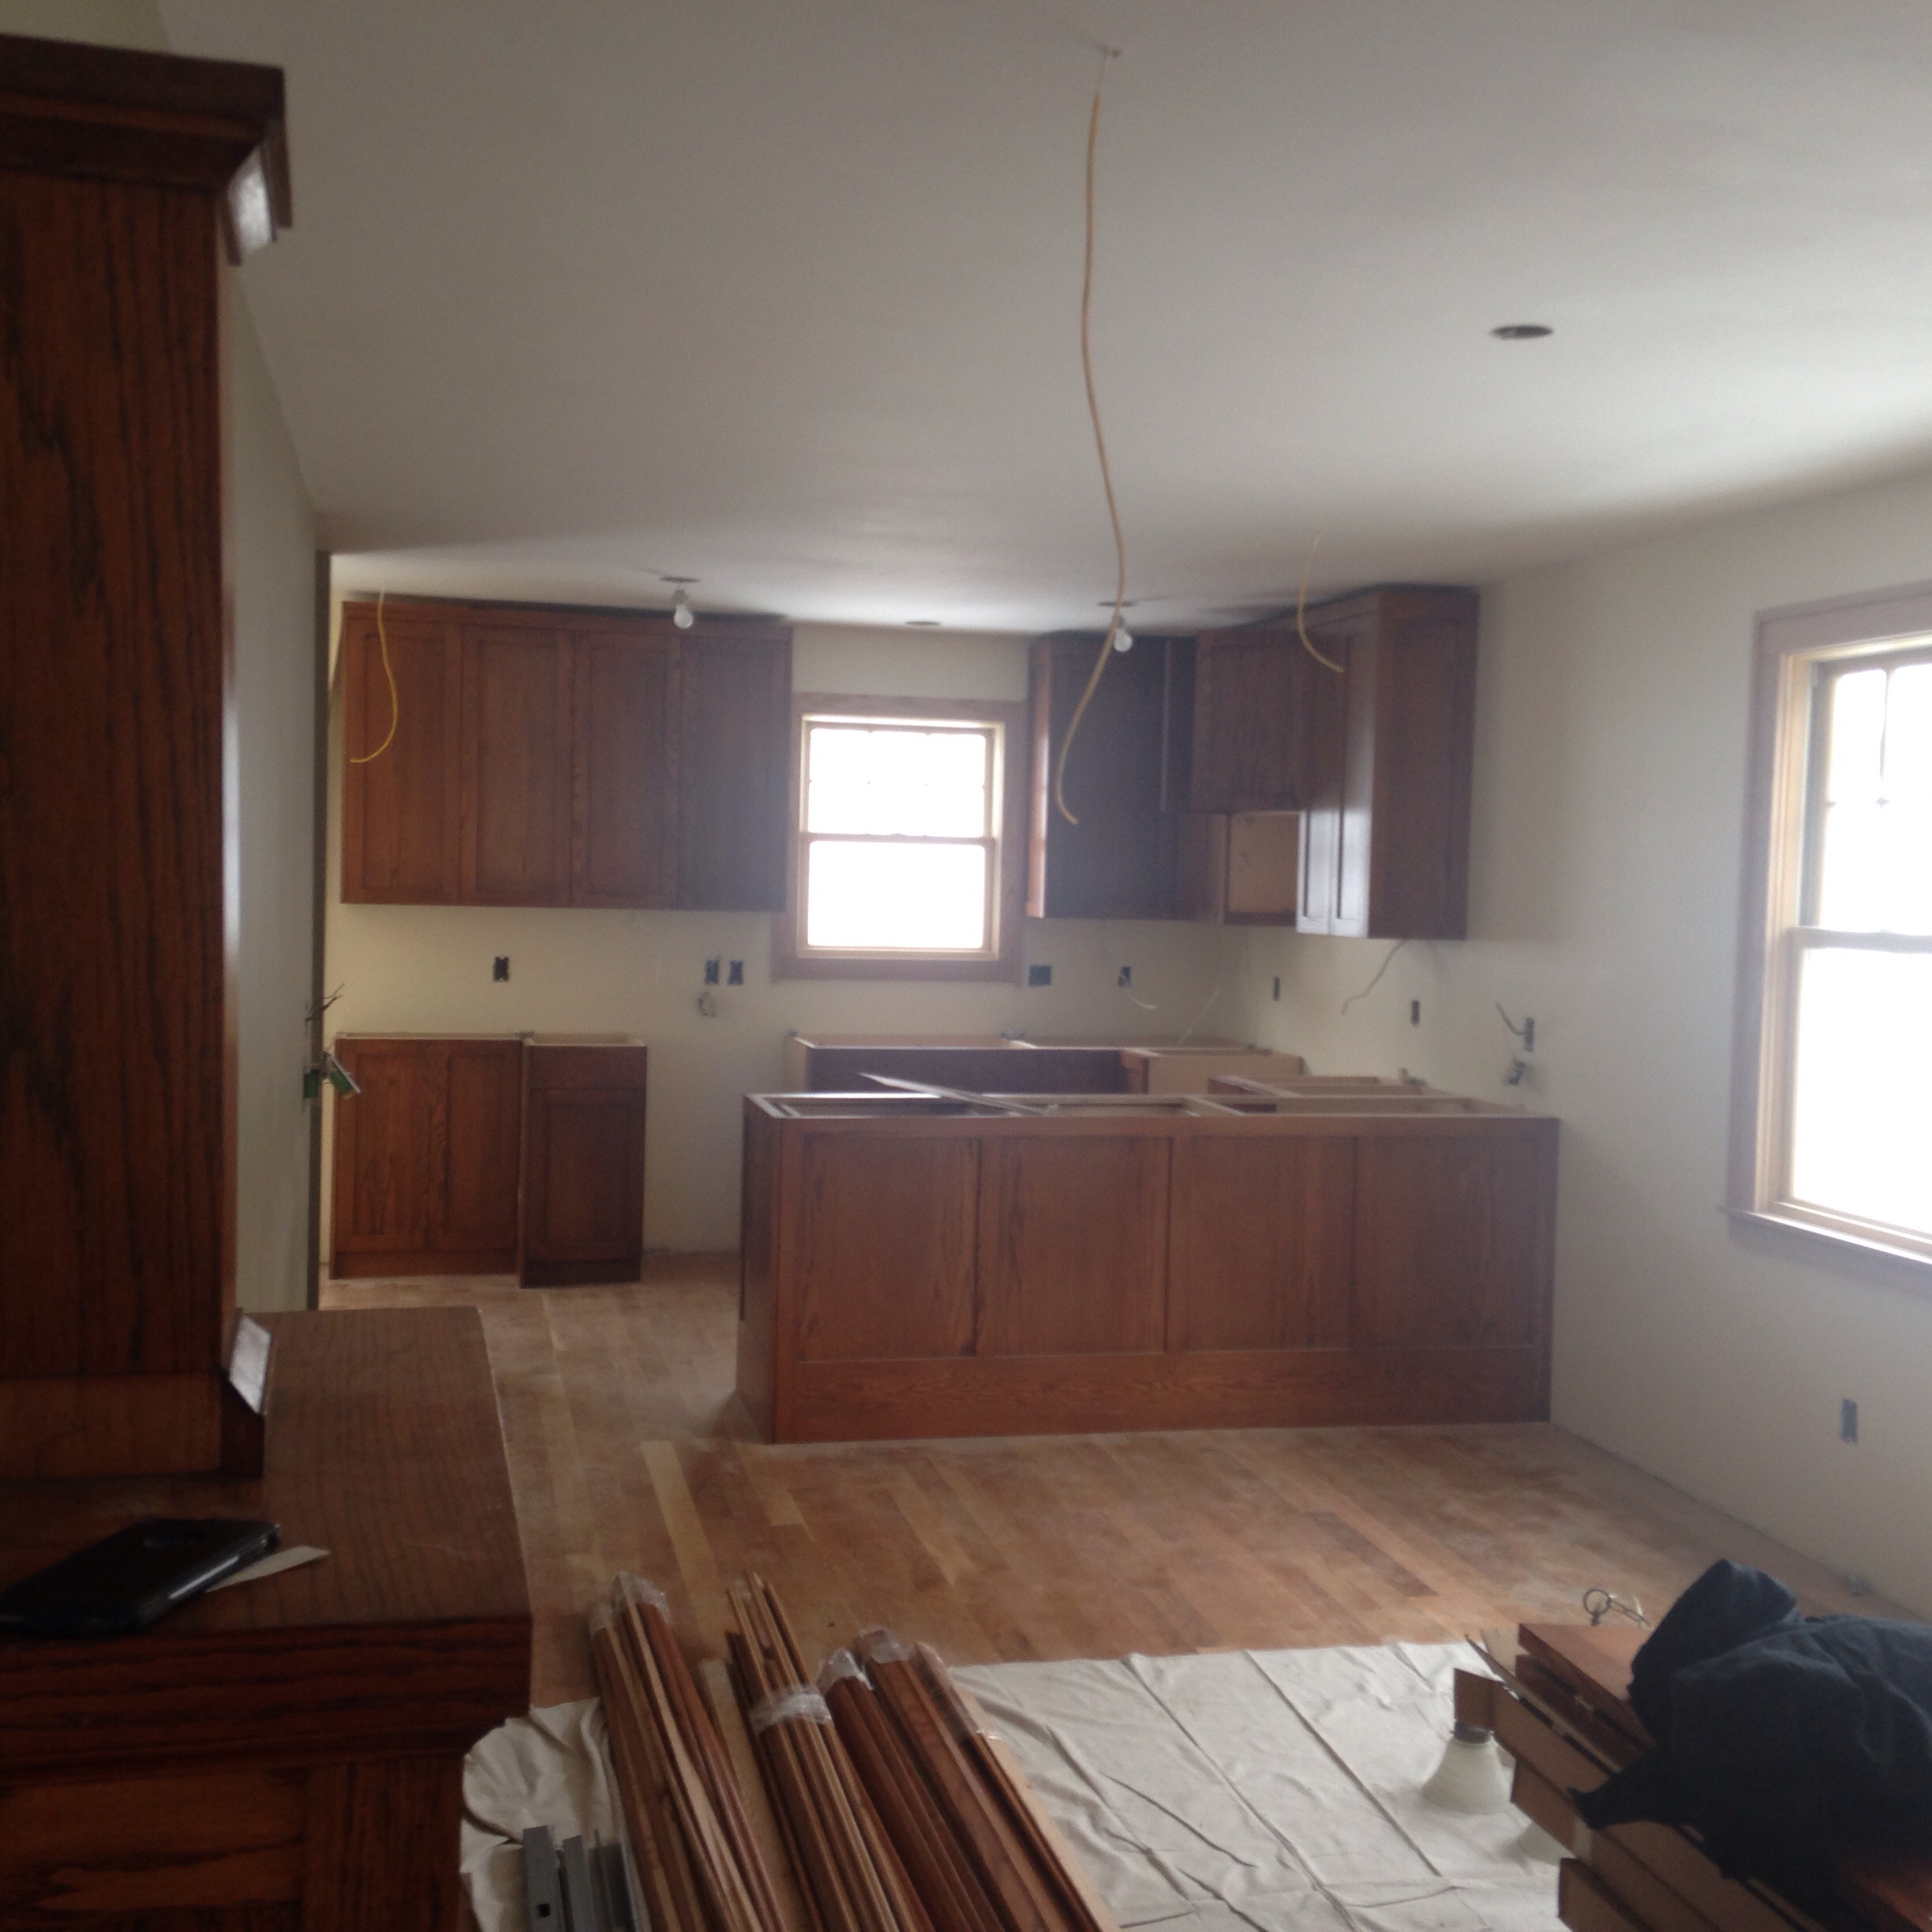 Kitchen cabinets in